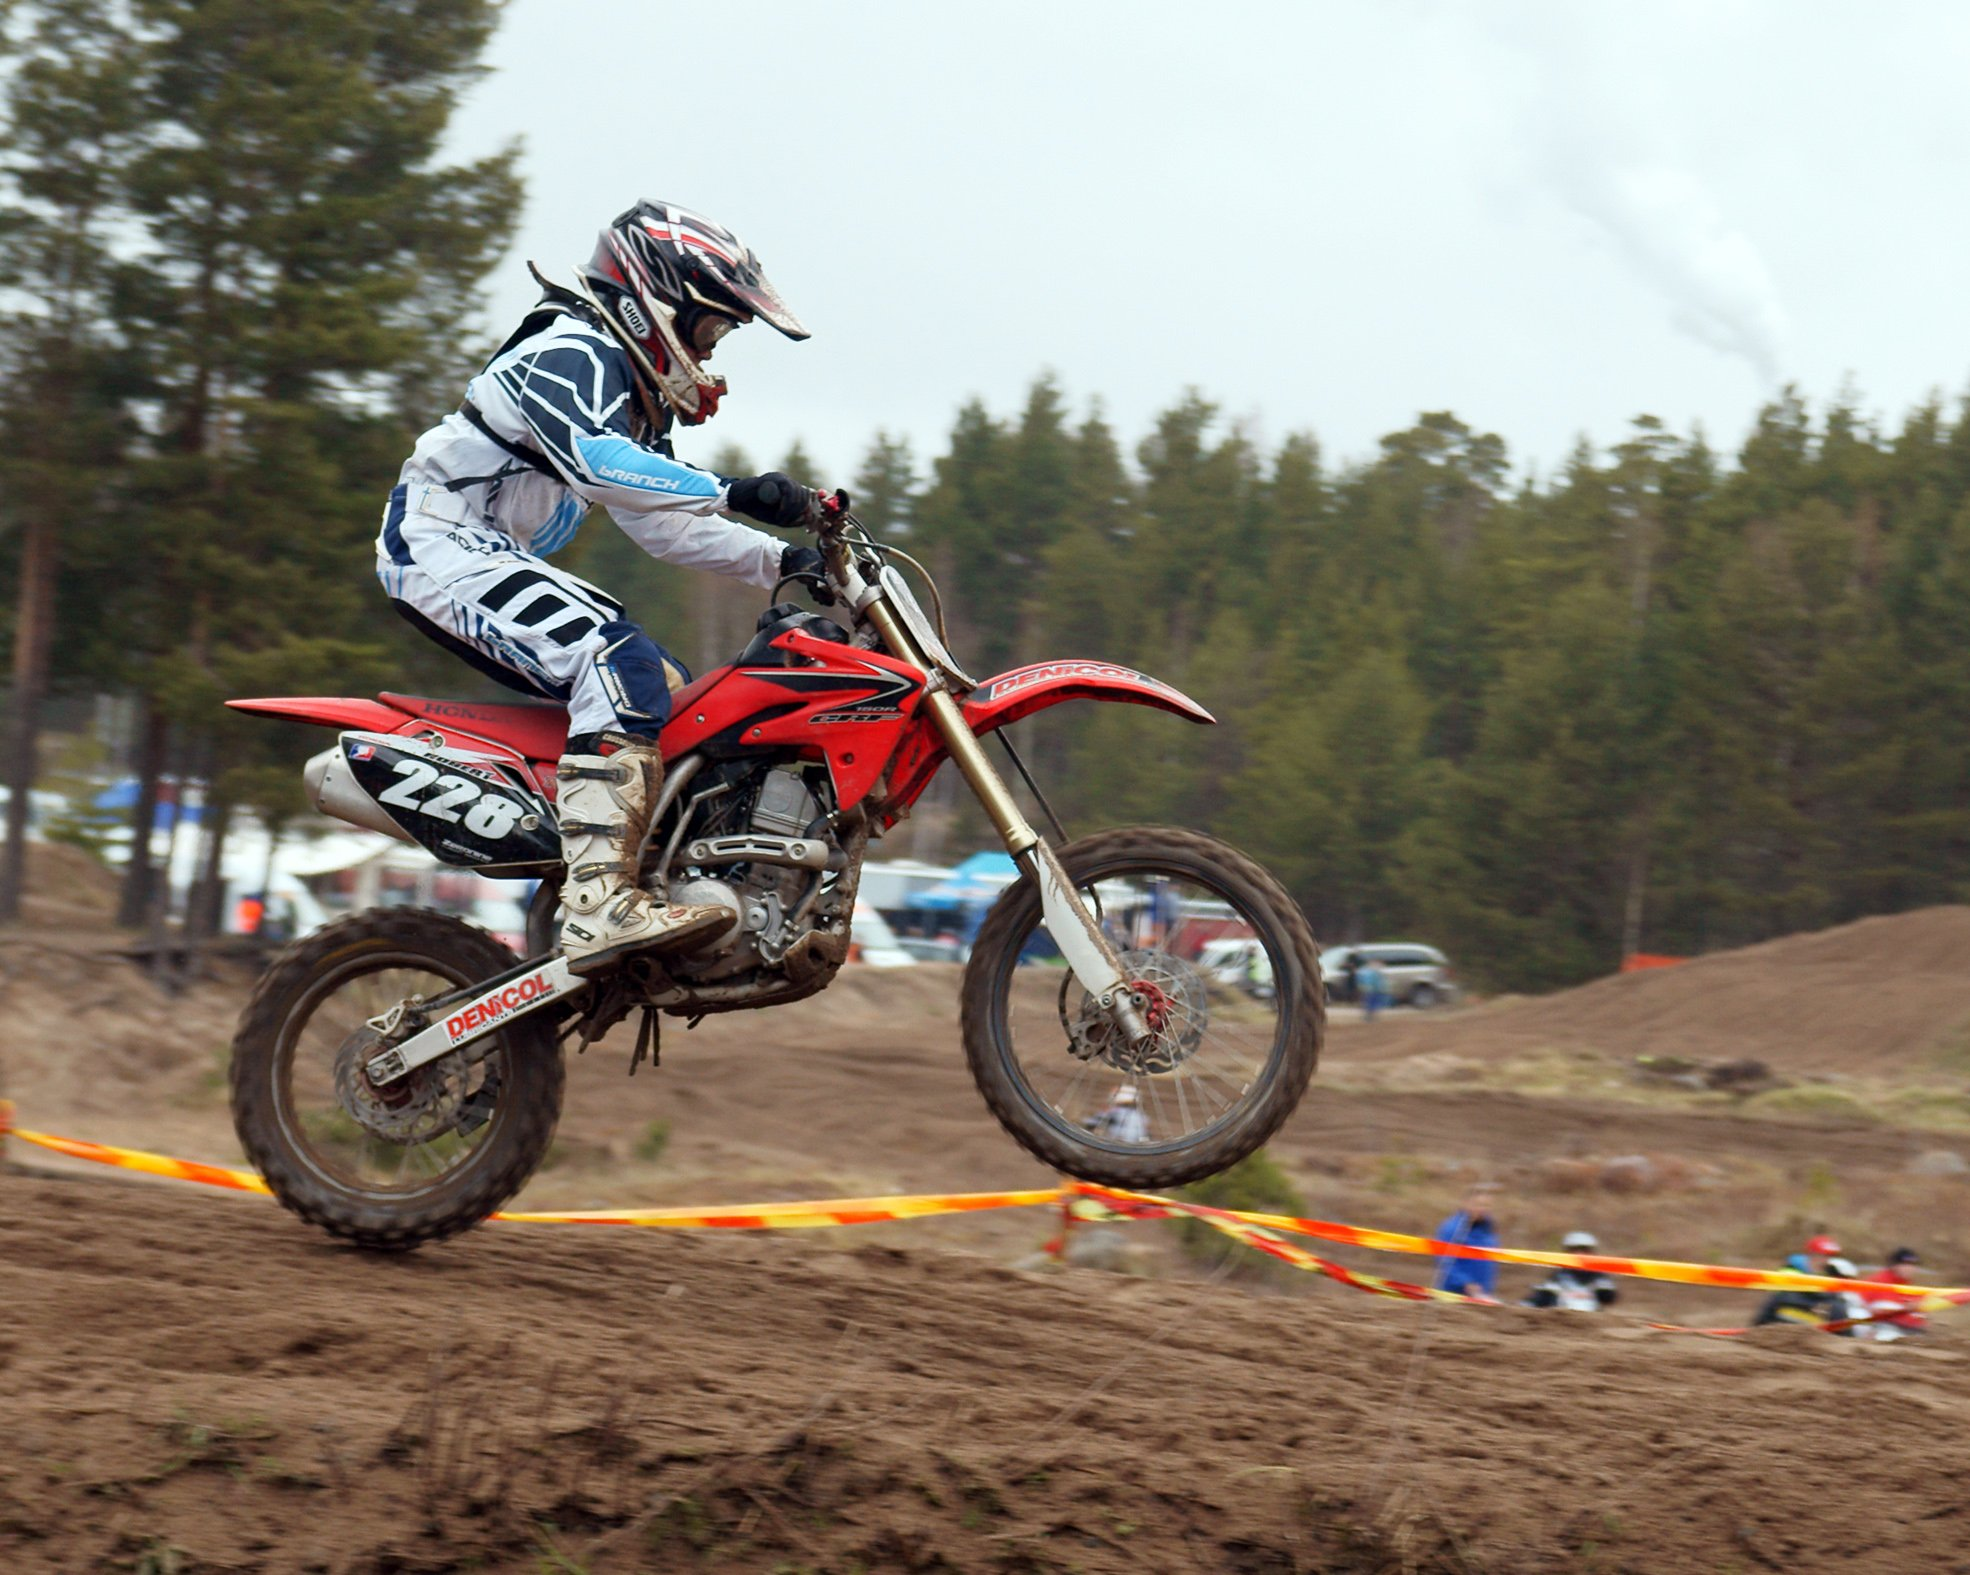 A competitor taking part in the Yyteri SM Motocross competition in Yyteri onMay 9, 2010 | Photo: Wikimedia/kallerna